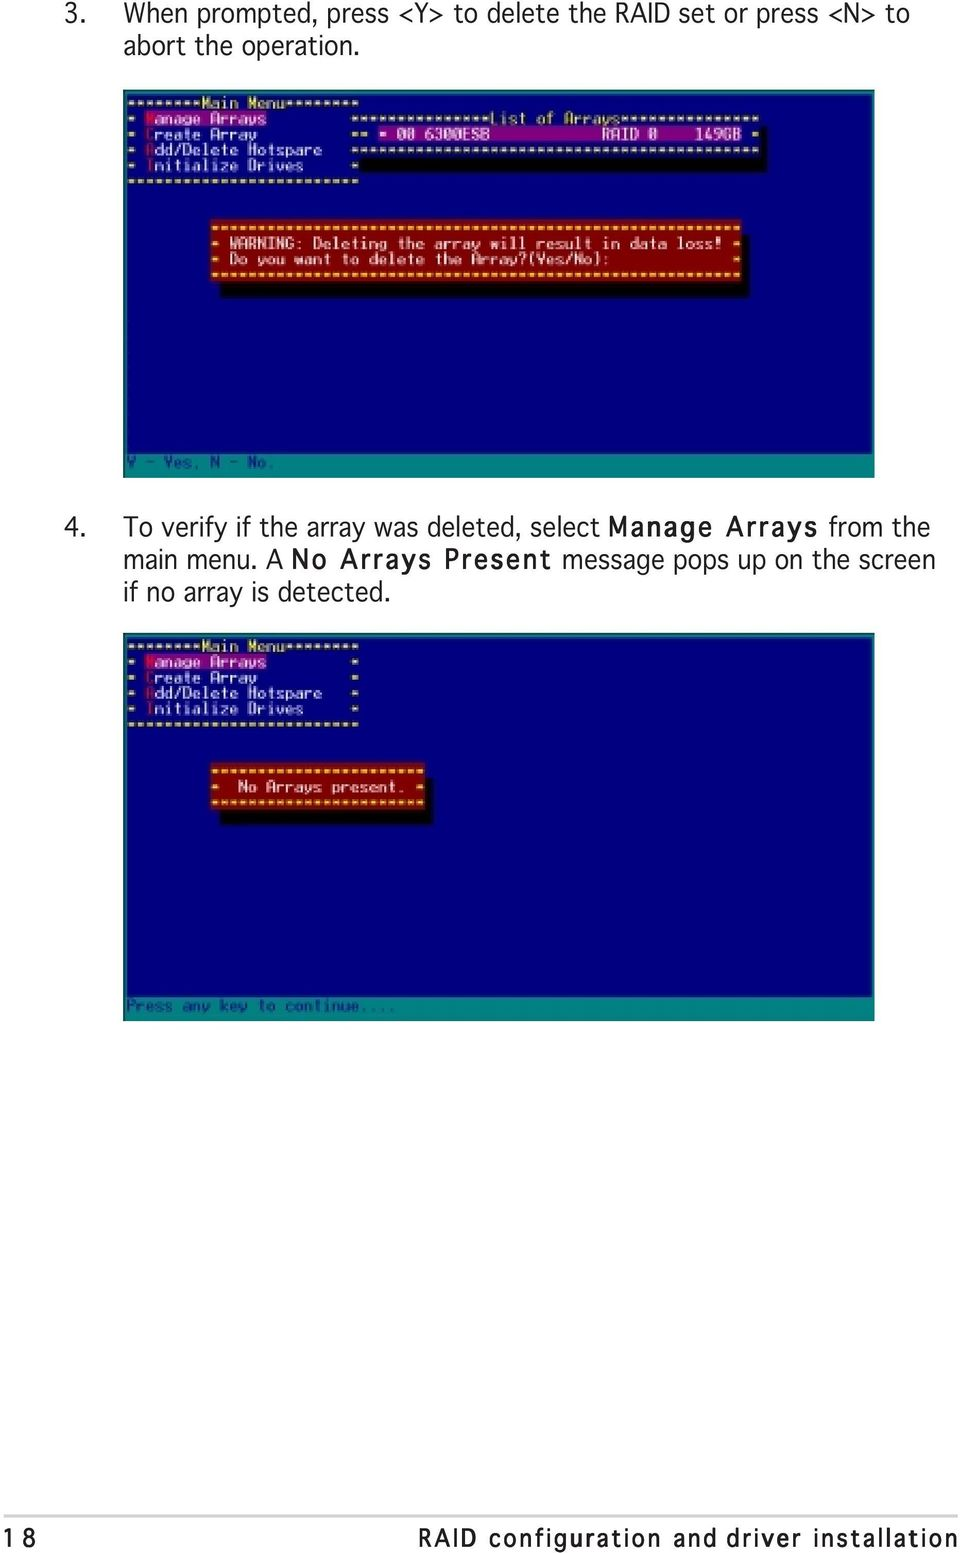 To verify if the array was deleted, select Manage Arrays from the main